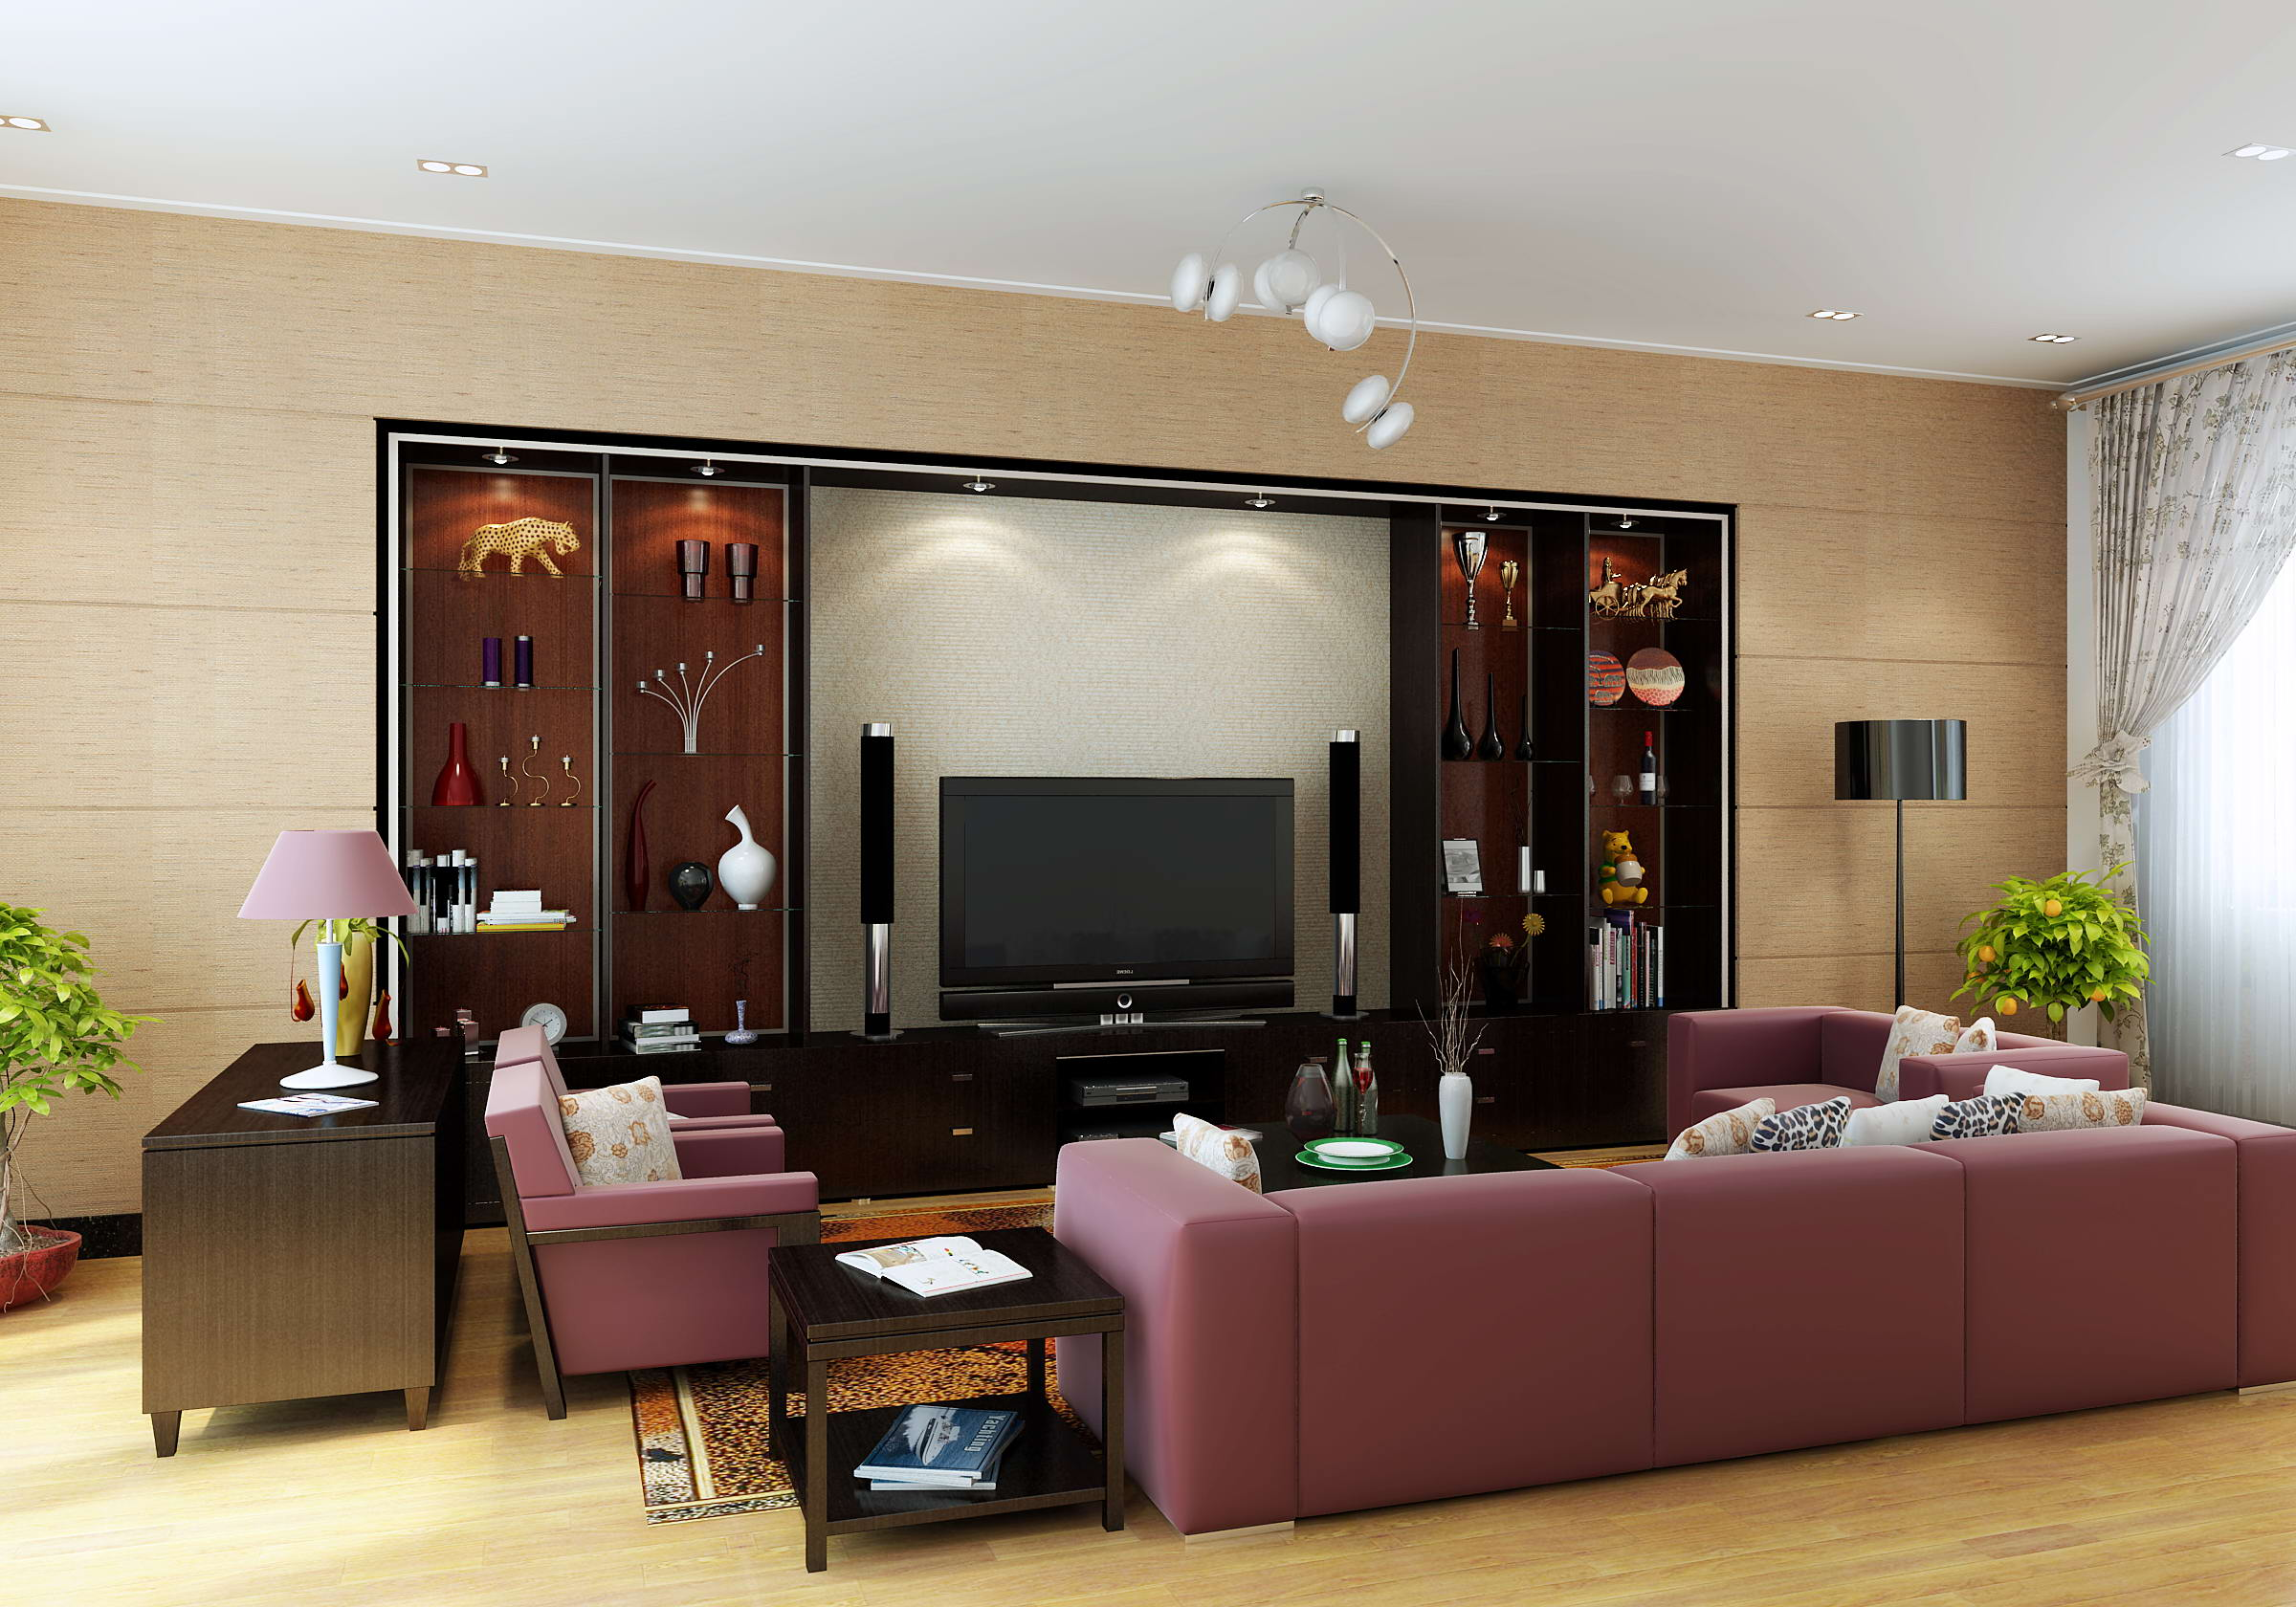 Model Living Room 3d model living hall with wall showcase | cgtrader